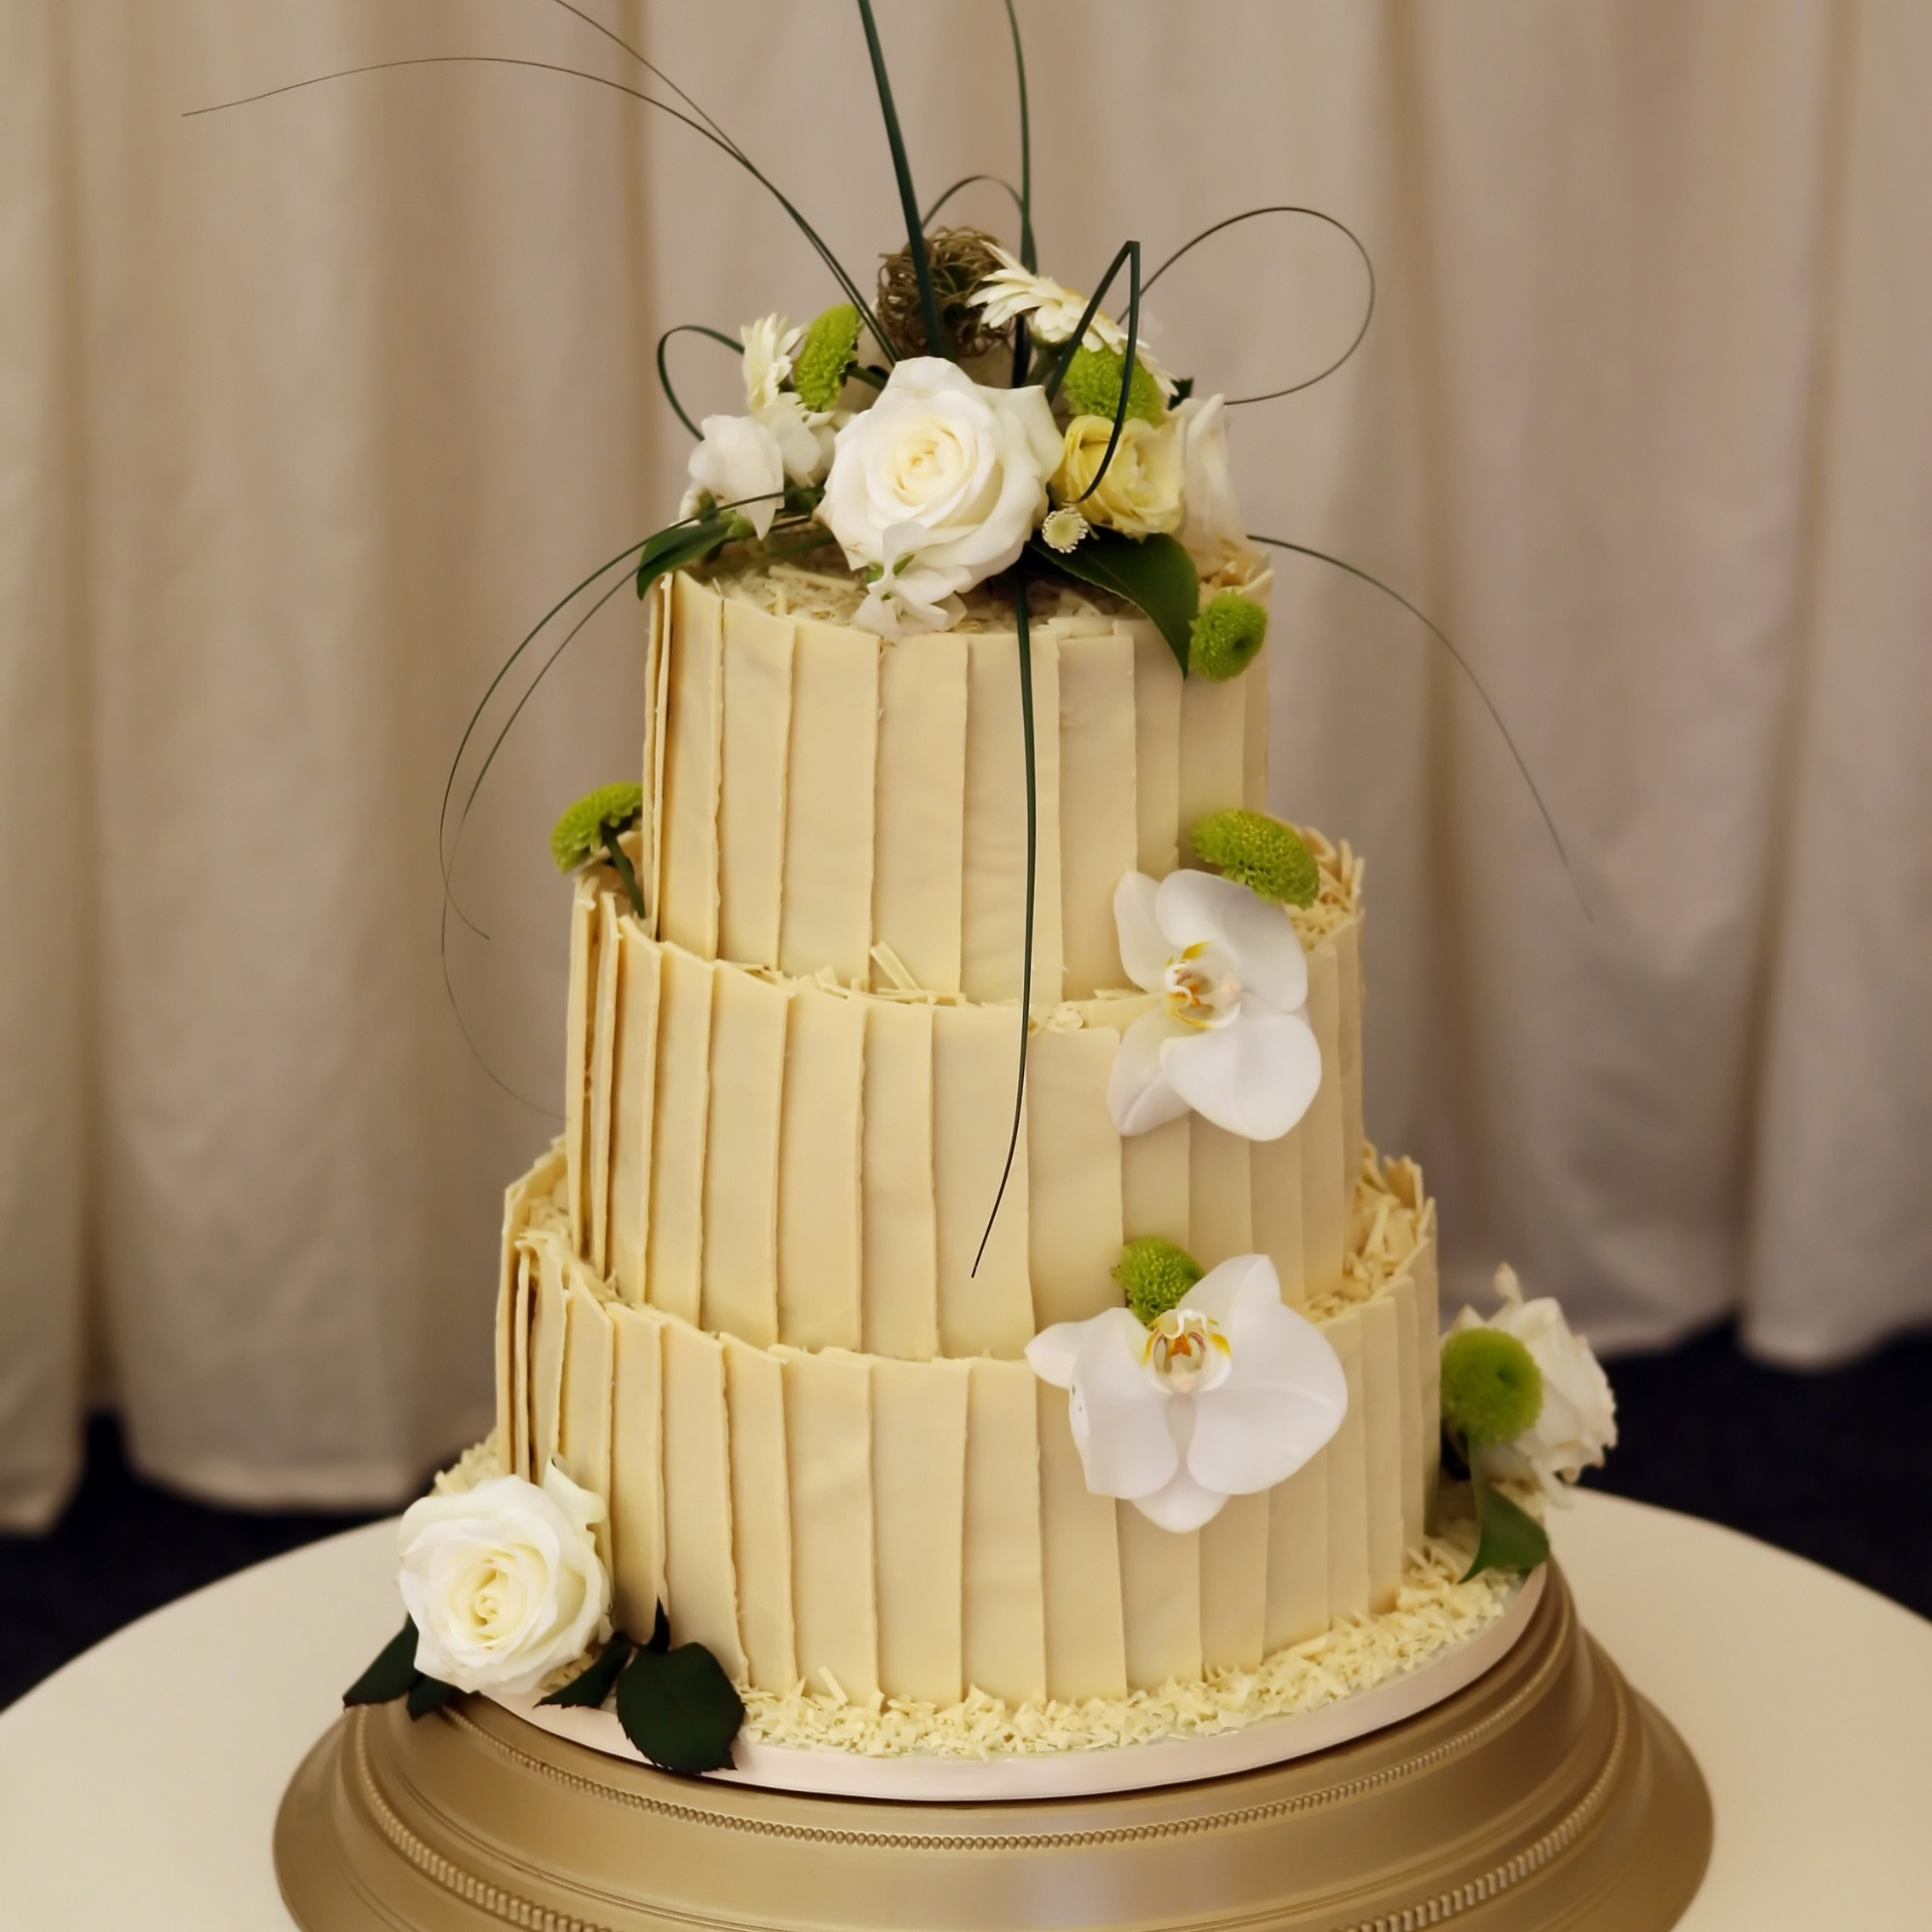 White chocolate decorated wedding cake